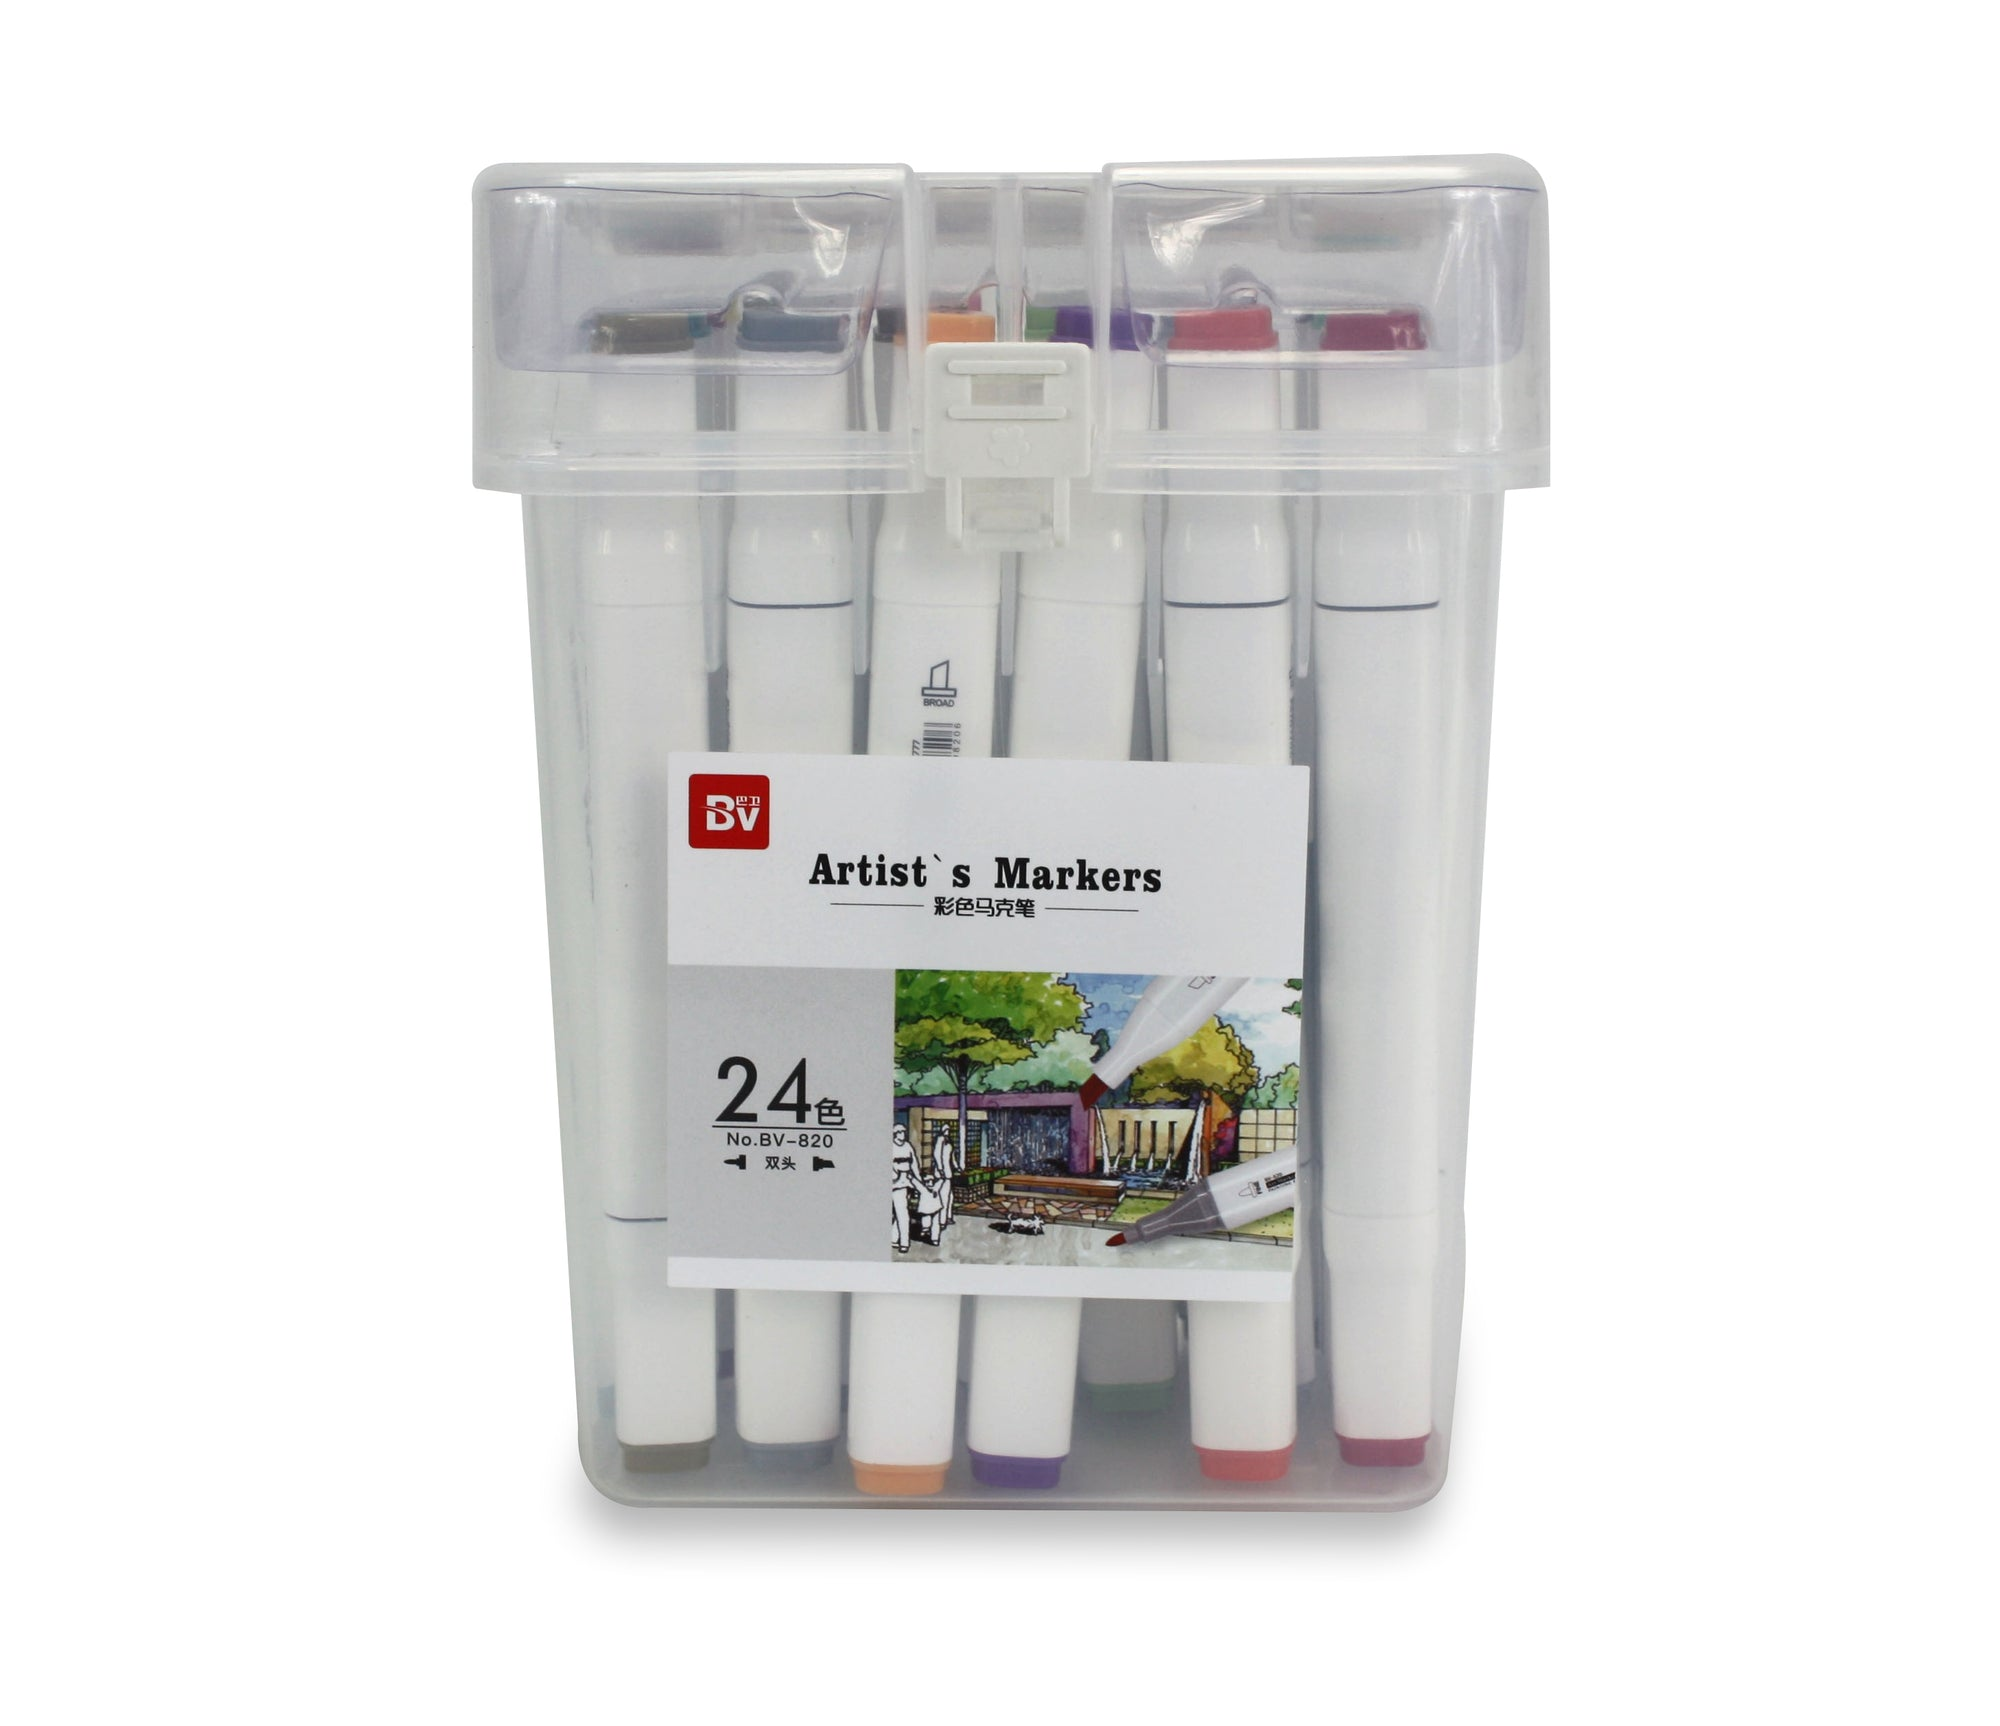 Artist's Marker Set - 24 Permanent Alcohol-based marker pens in carry case. - farangshop-co